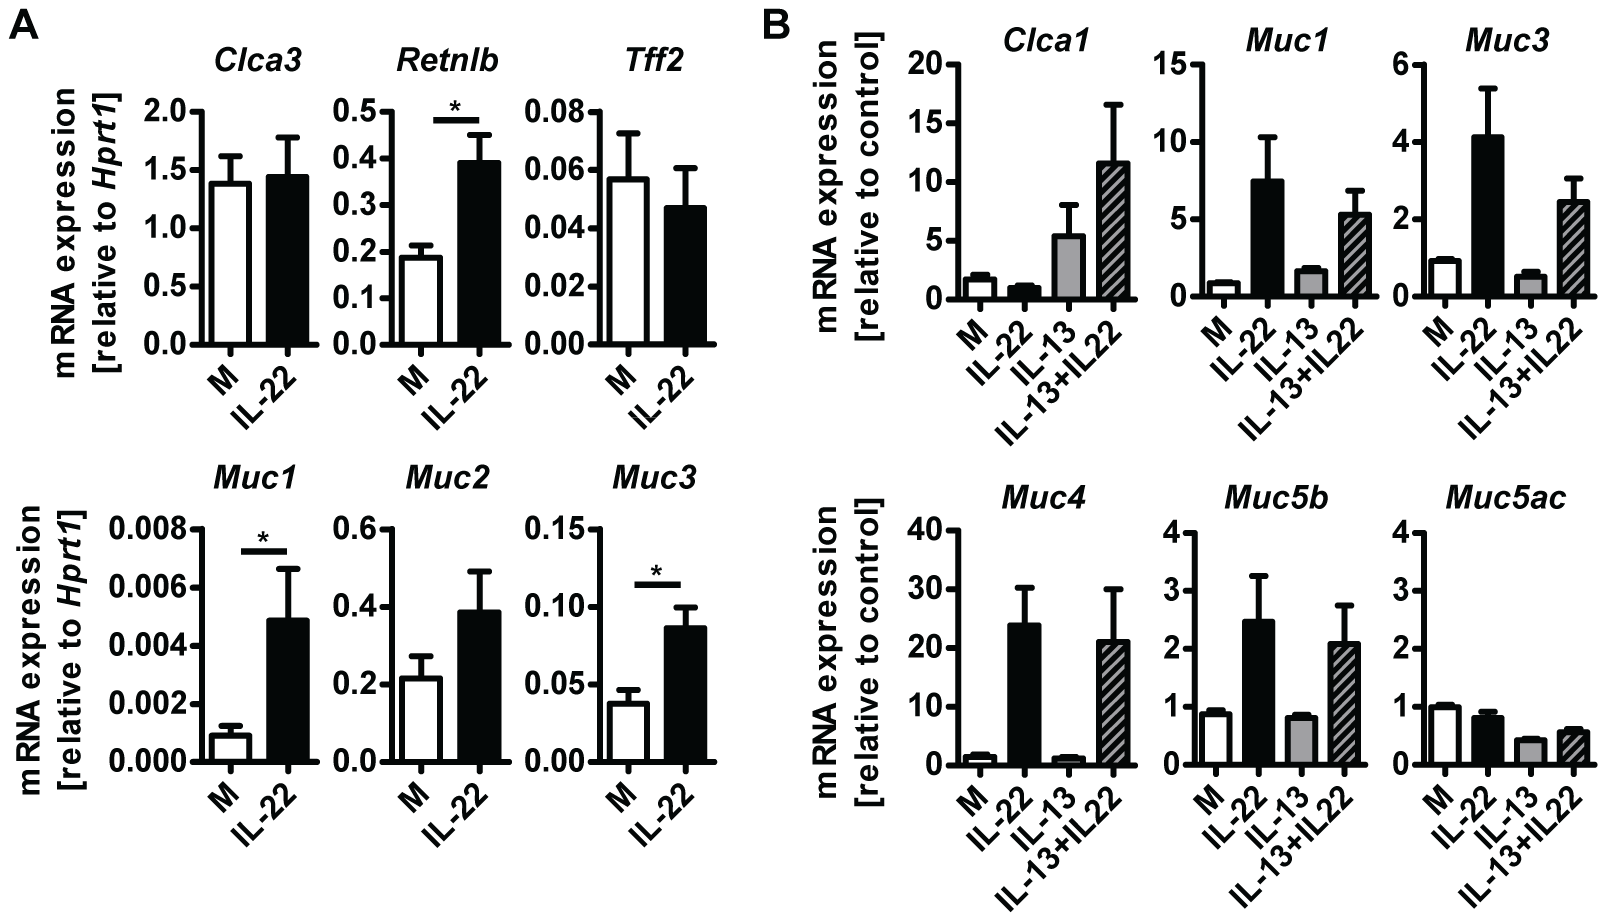 IL-22 acts directly on epithelial cells to induce mucin expression.